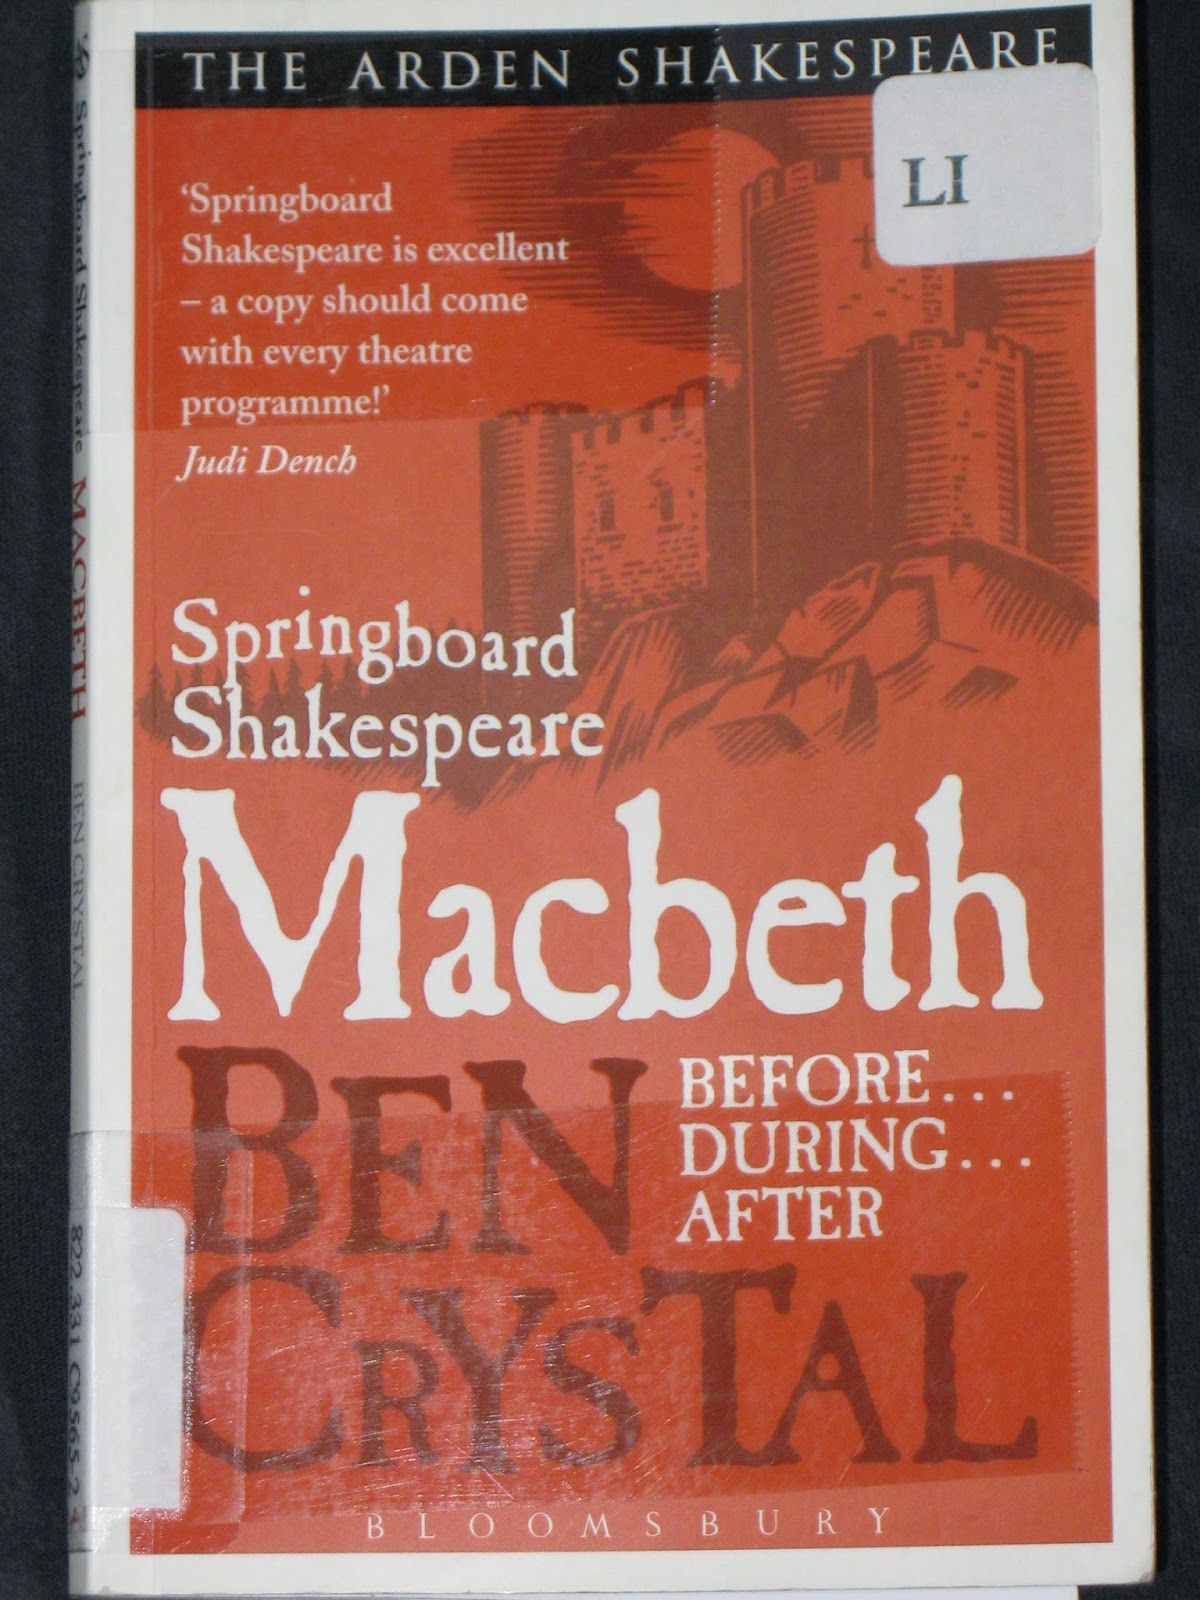 a comparative study shakespeare s macbeth and William shakespeare's macbeth' is about a servant of the king (macbeth) and his ambition to become king after receiving prophecies from three witches that claim he will be king macbeth tells his wife of these prophecies and his wife (lady macbeth) produces a plan to slay the current king (duncan) so that macbeth will become king.